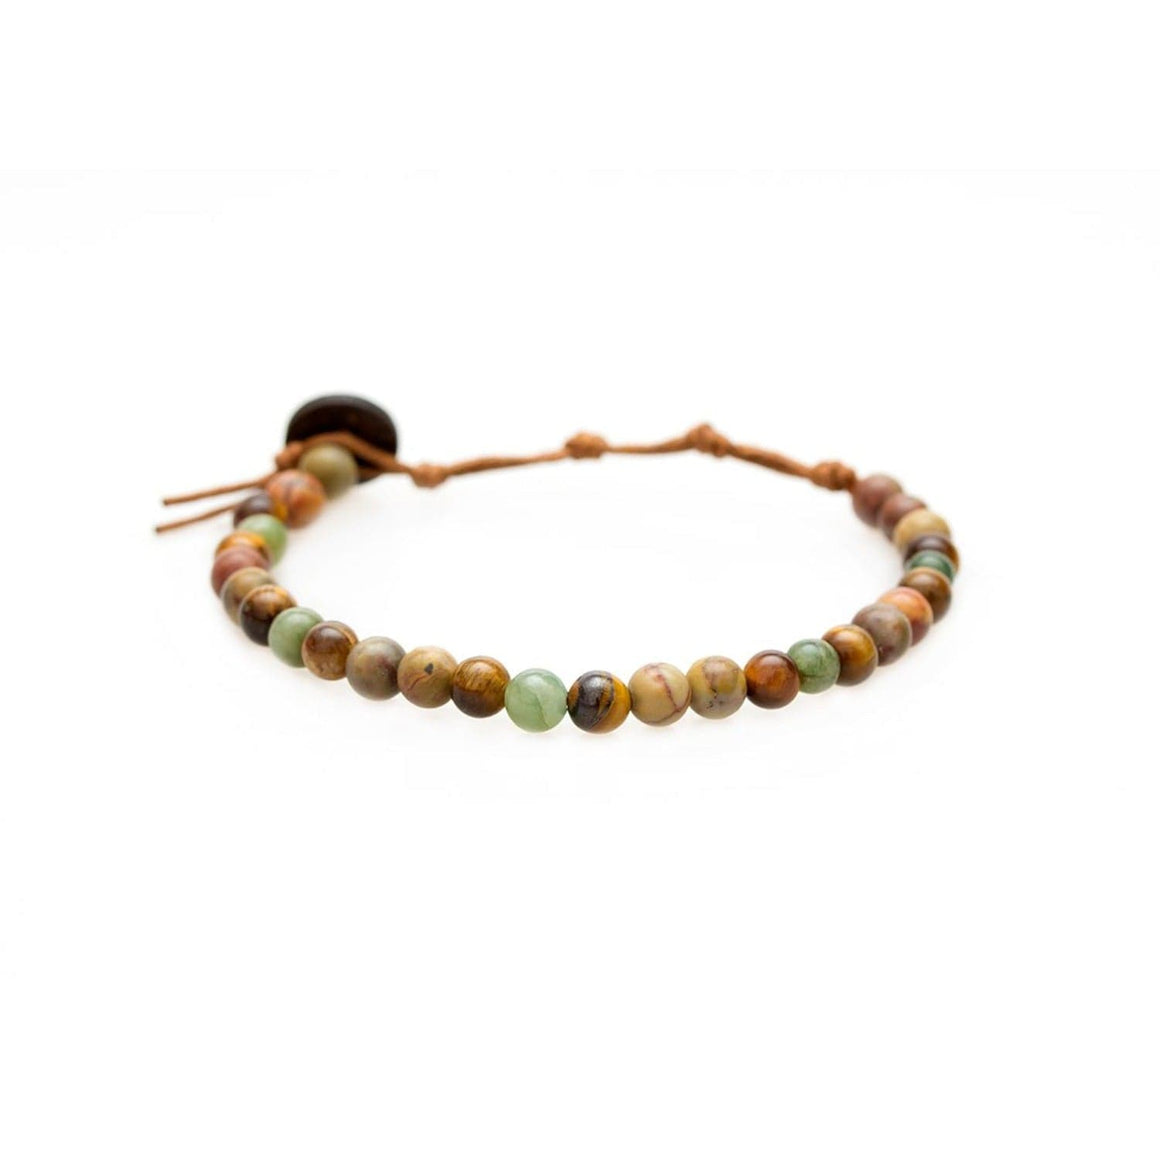 Prosperity + Courage Bracelet